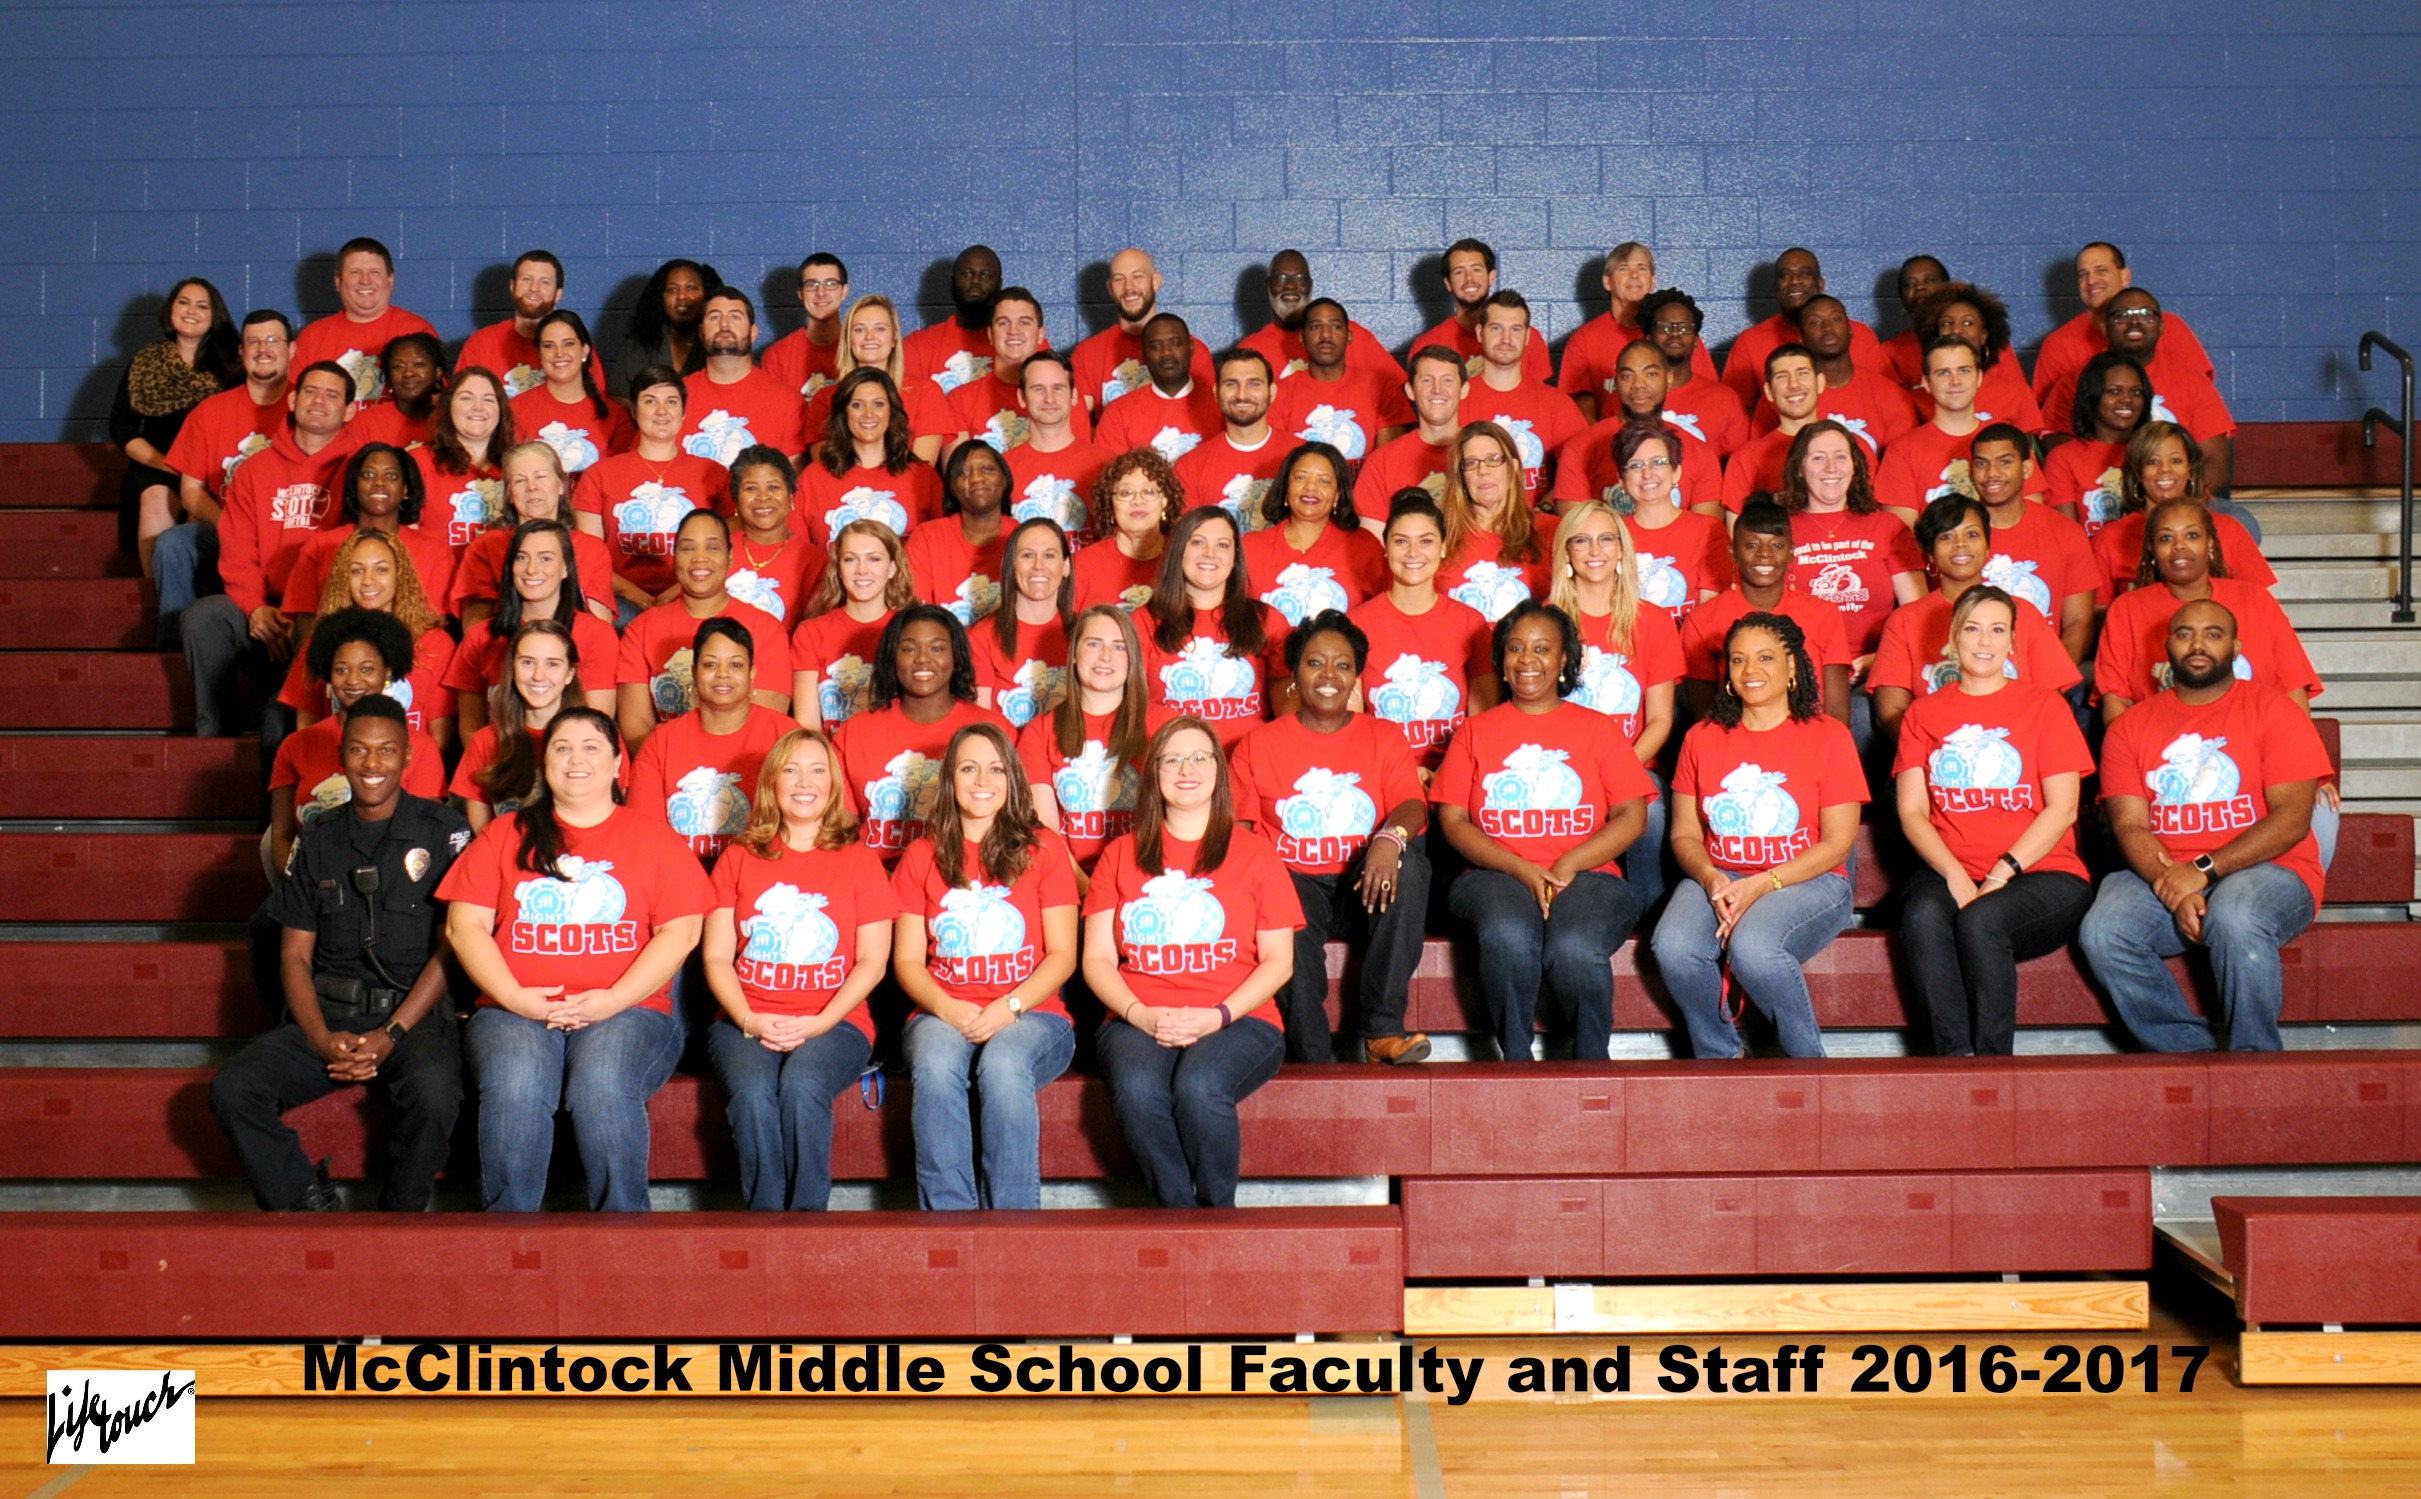 McClintock Middle School Faculty Group picture 2016-2017.jpg